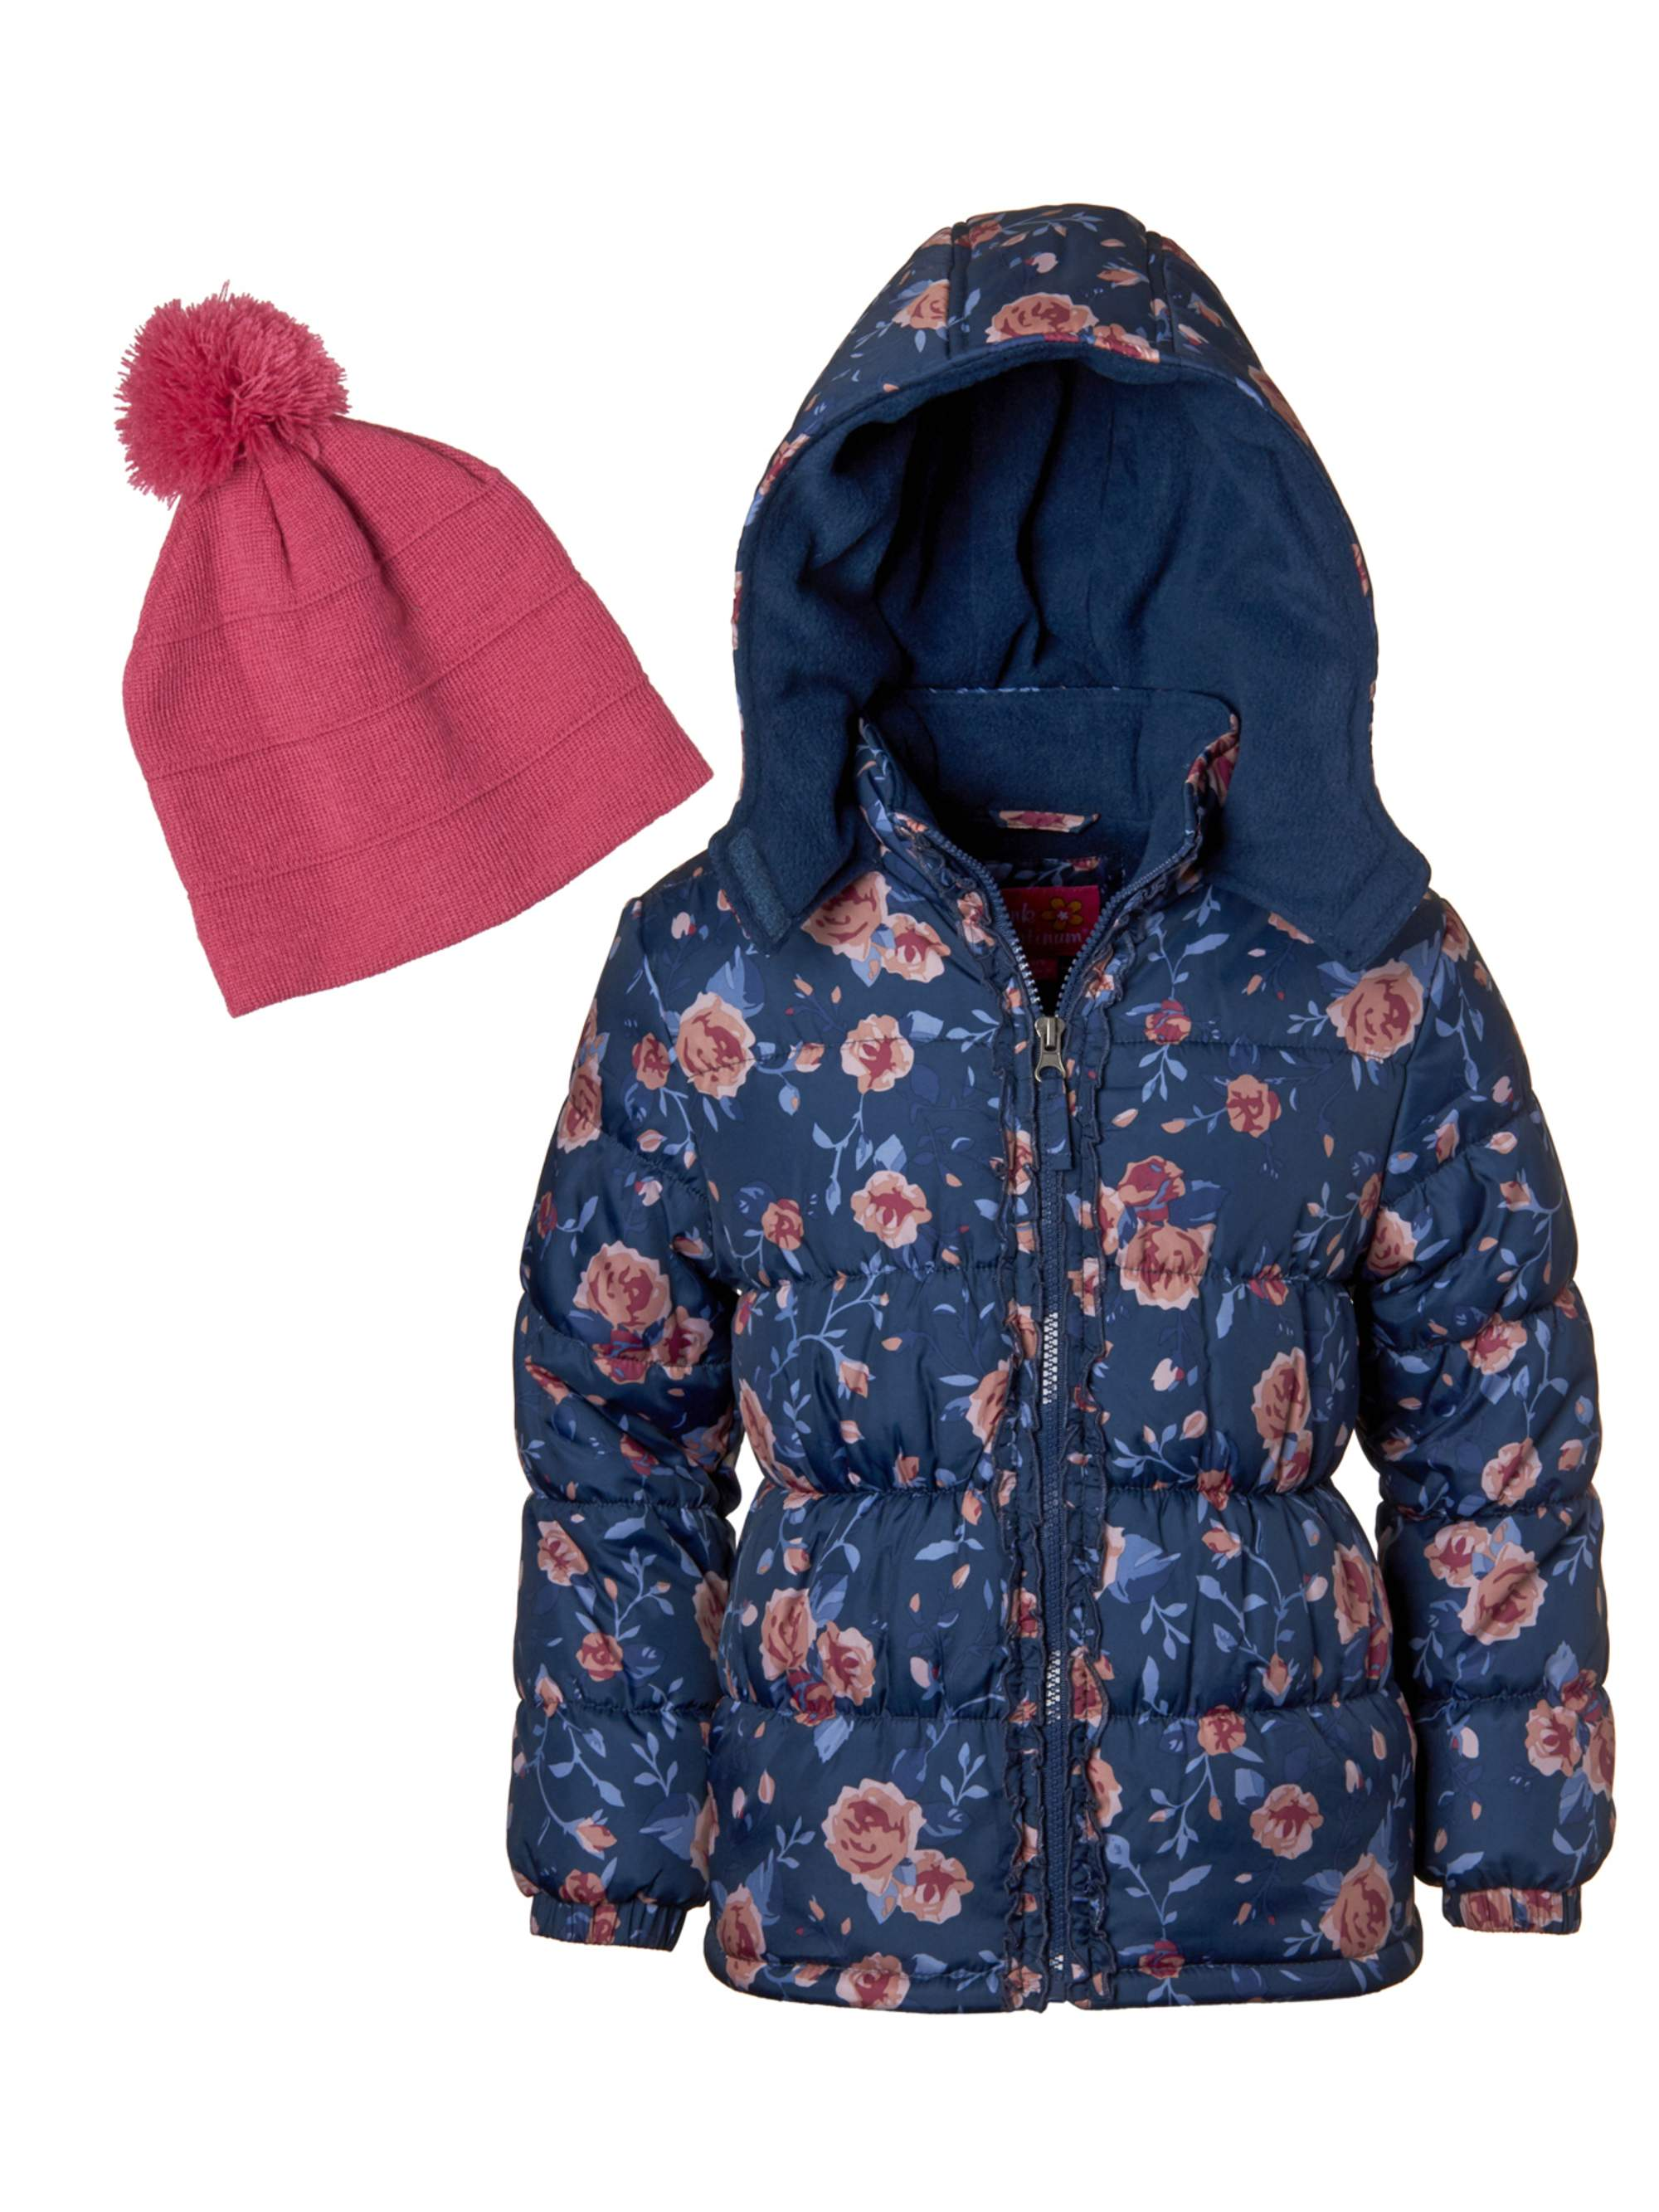 Floral Printed Puffer Jacket with GWP Beanie Hat (Little Girls & Big Girls)